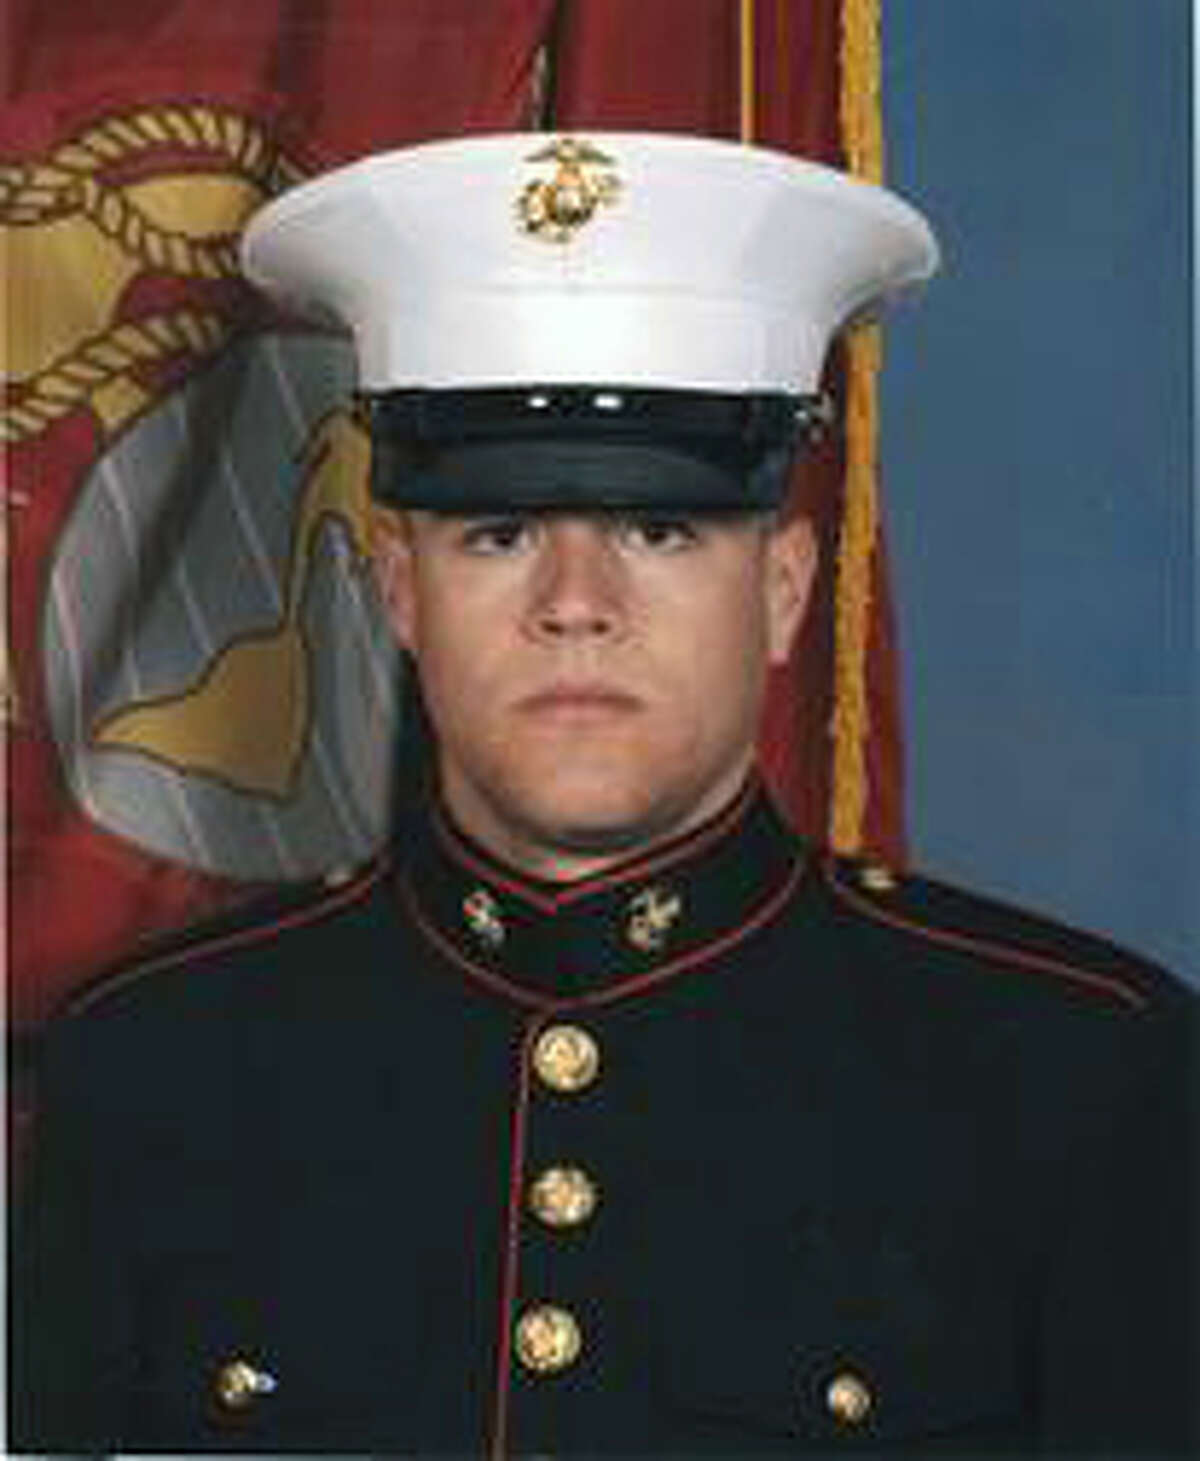 Marine Lance Cpl. Benjamin Whetstone Schmidt, 24, who died on the eve of today's 10th anniversary of the start of the Afghan war, was the son of Becky Whetstone and Dr. David Schmidt, team physician for the Spurs.